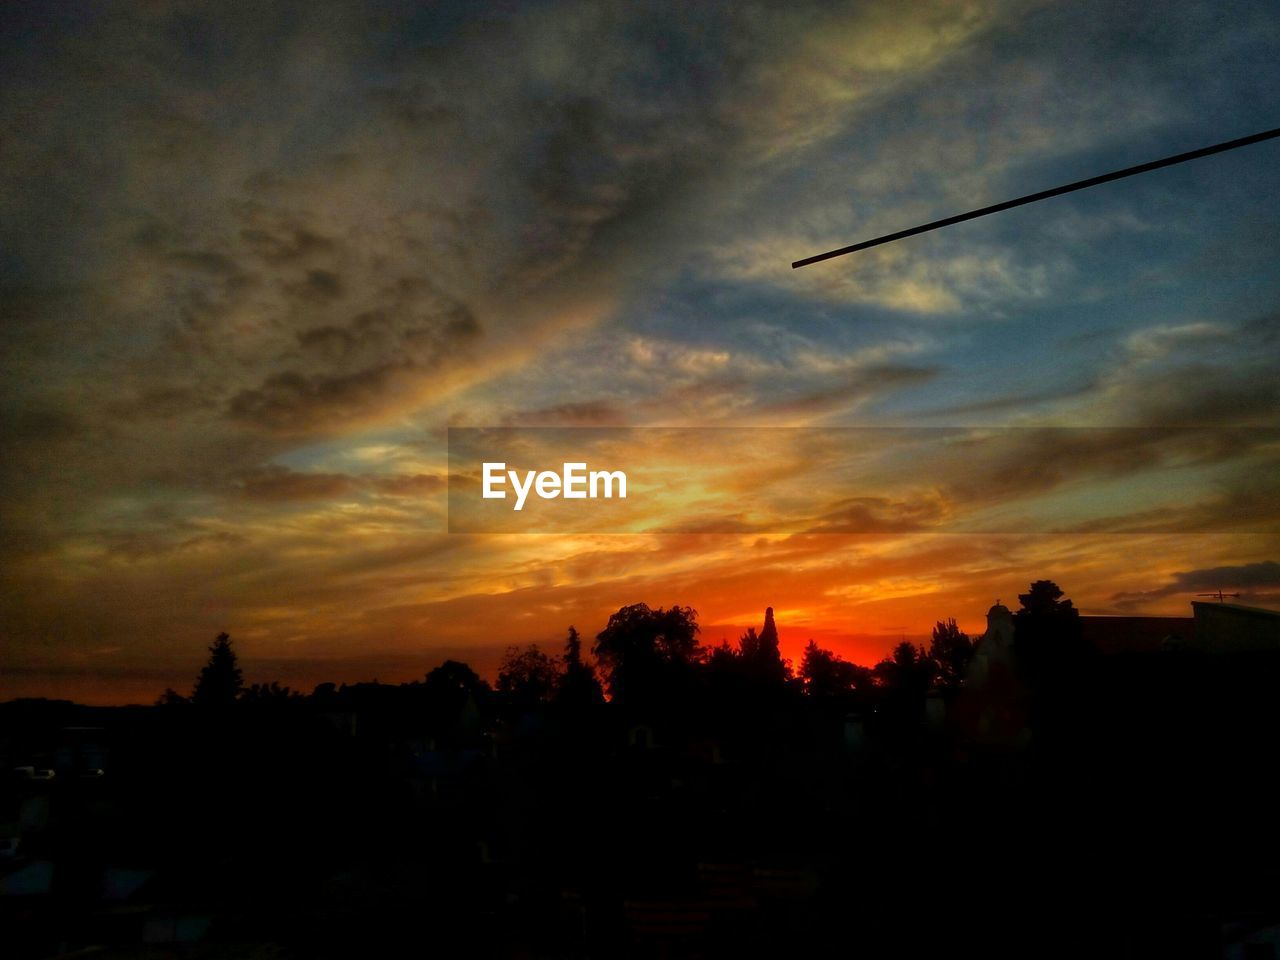 sunset, silhouette, sky, nature, no people, beauty in nature, tree, outdoors, city